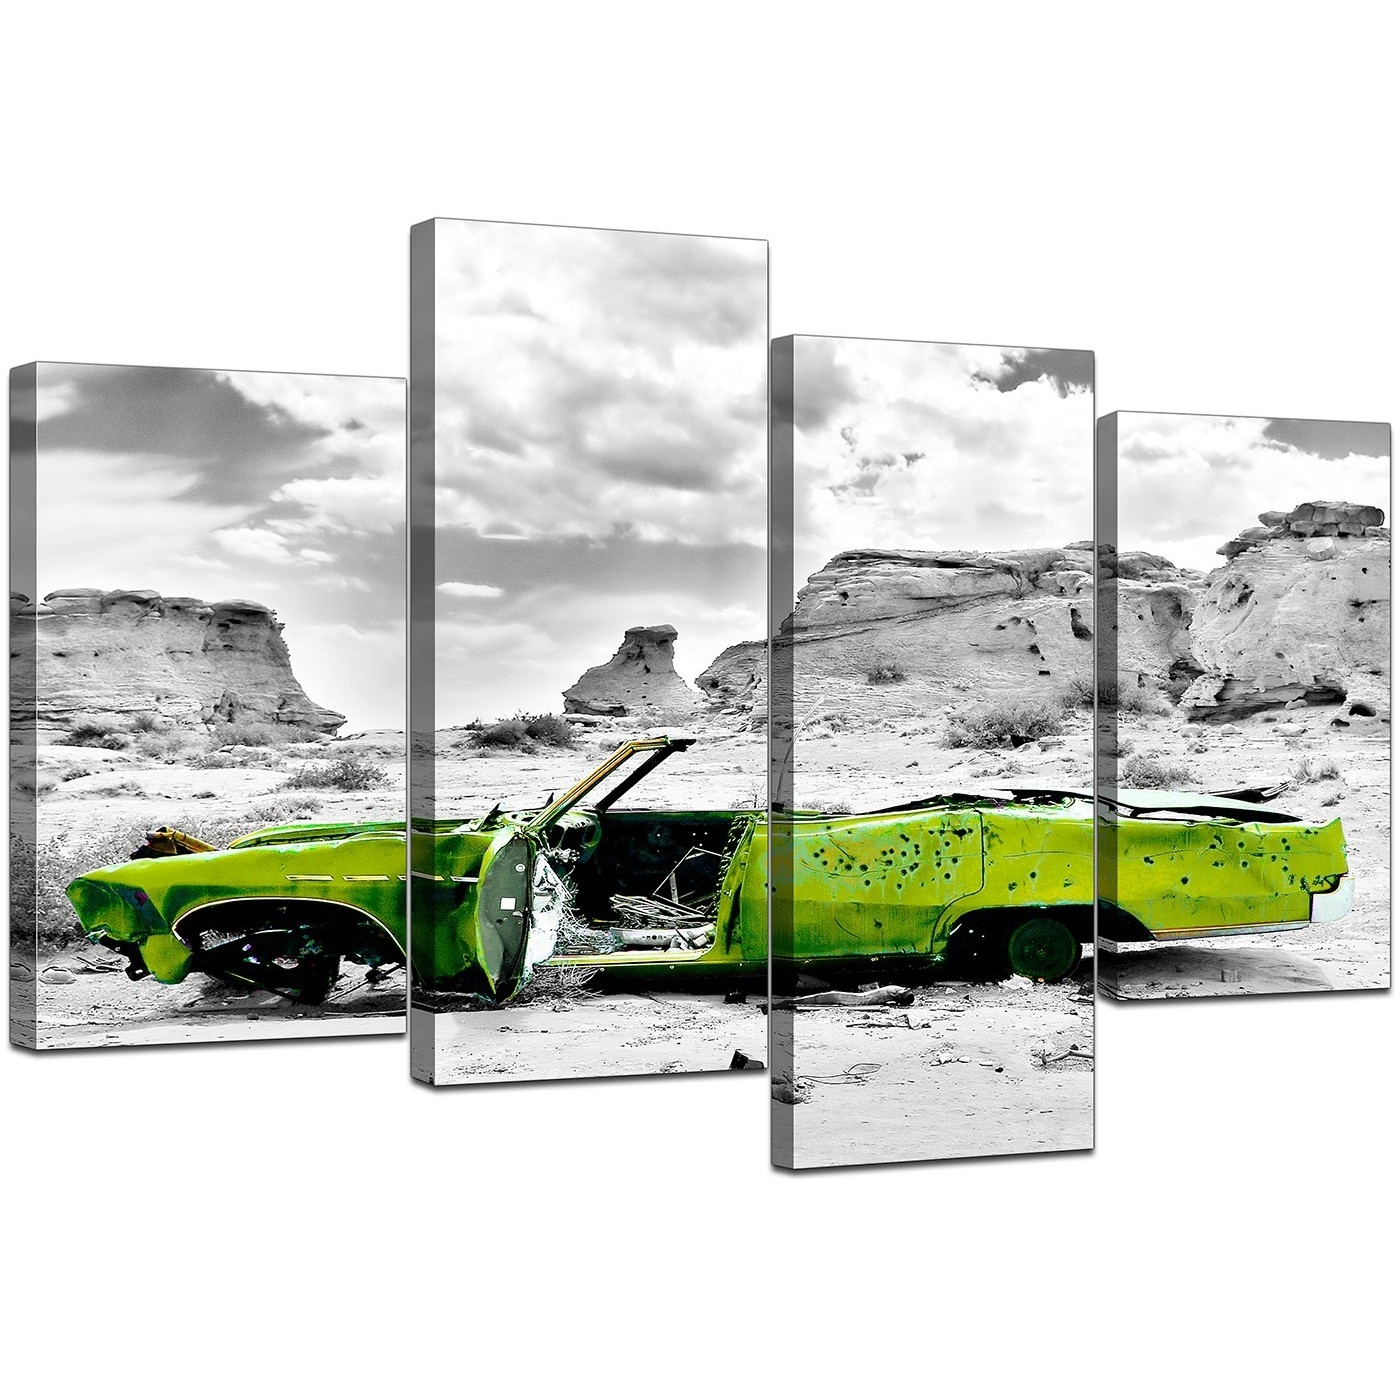 Canvas Art Of Green Car In Black & White For Your Office Intended For Current Lime Green Canvas Wall Art (View 6 of 15)